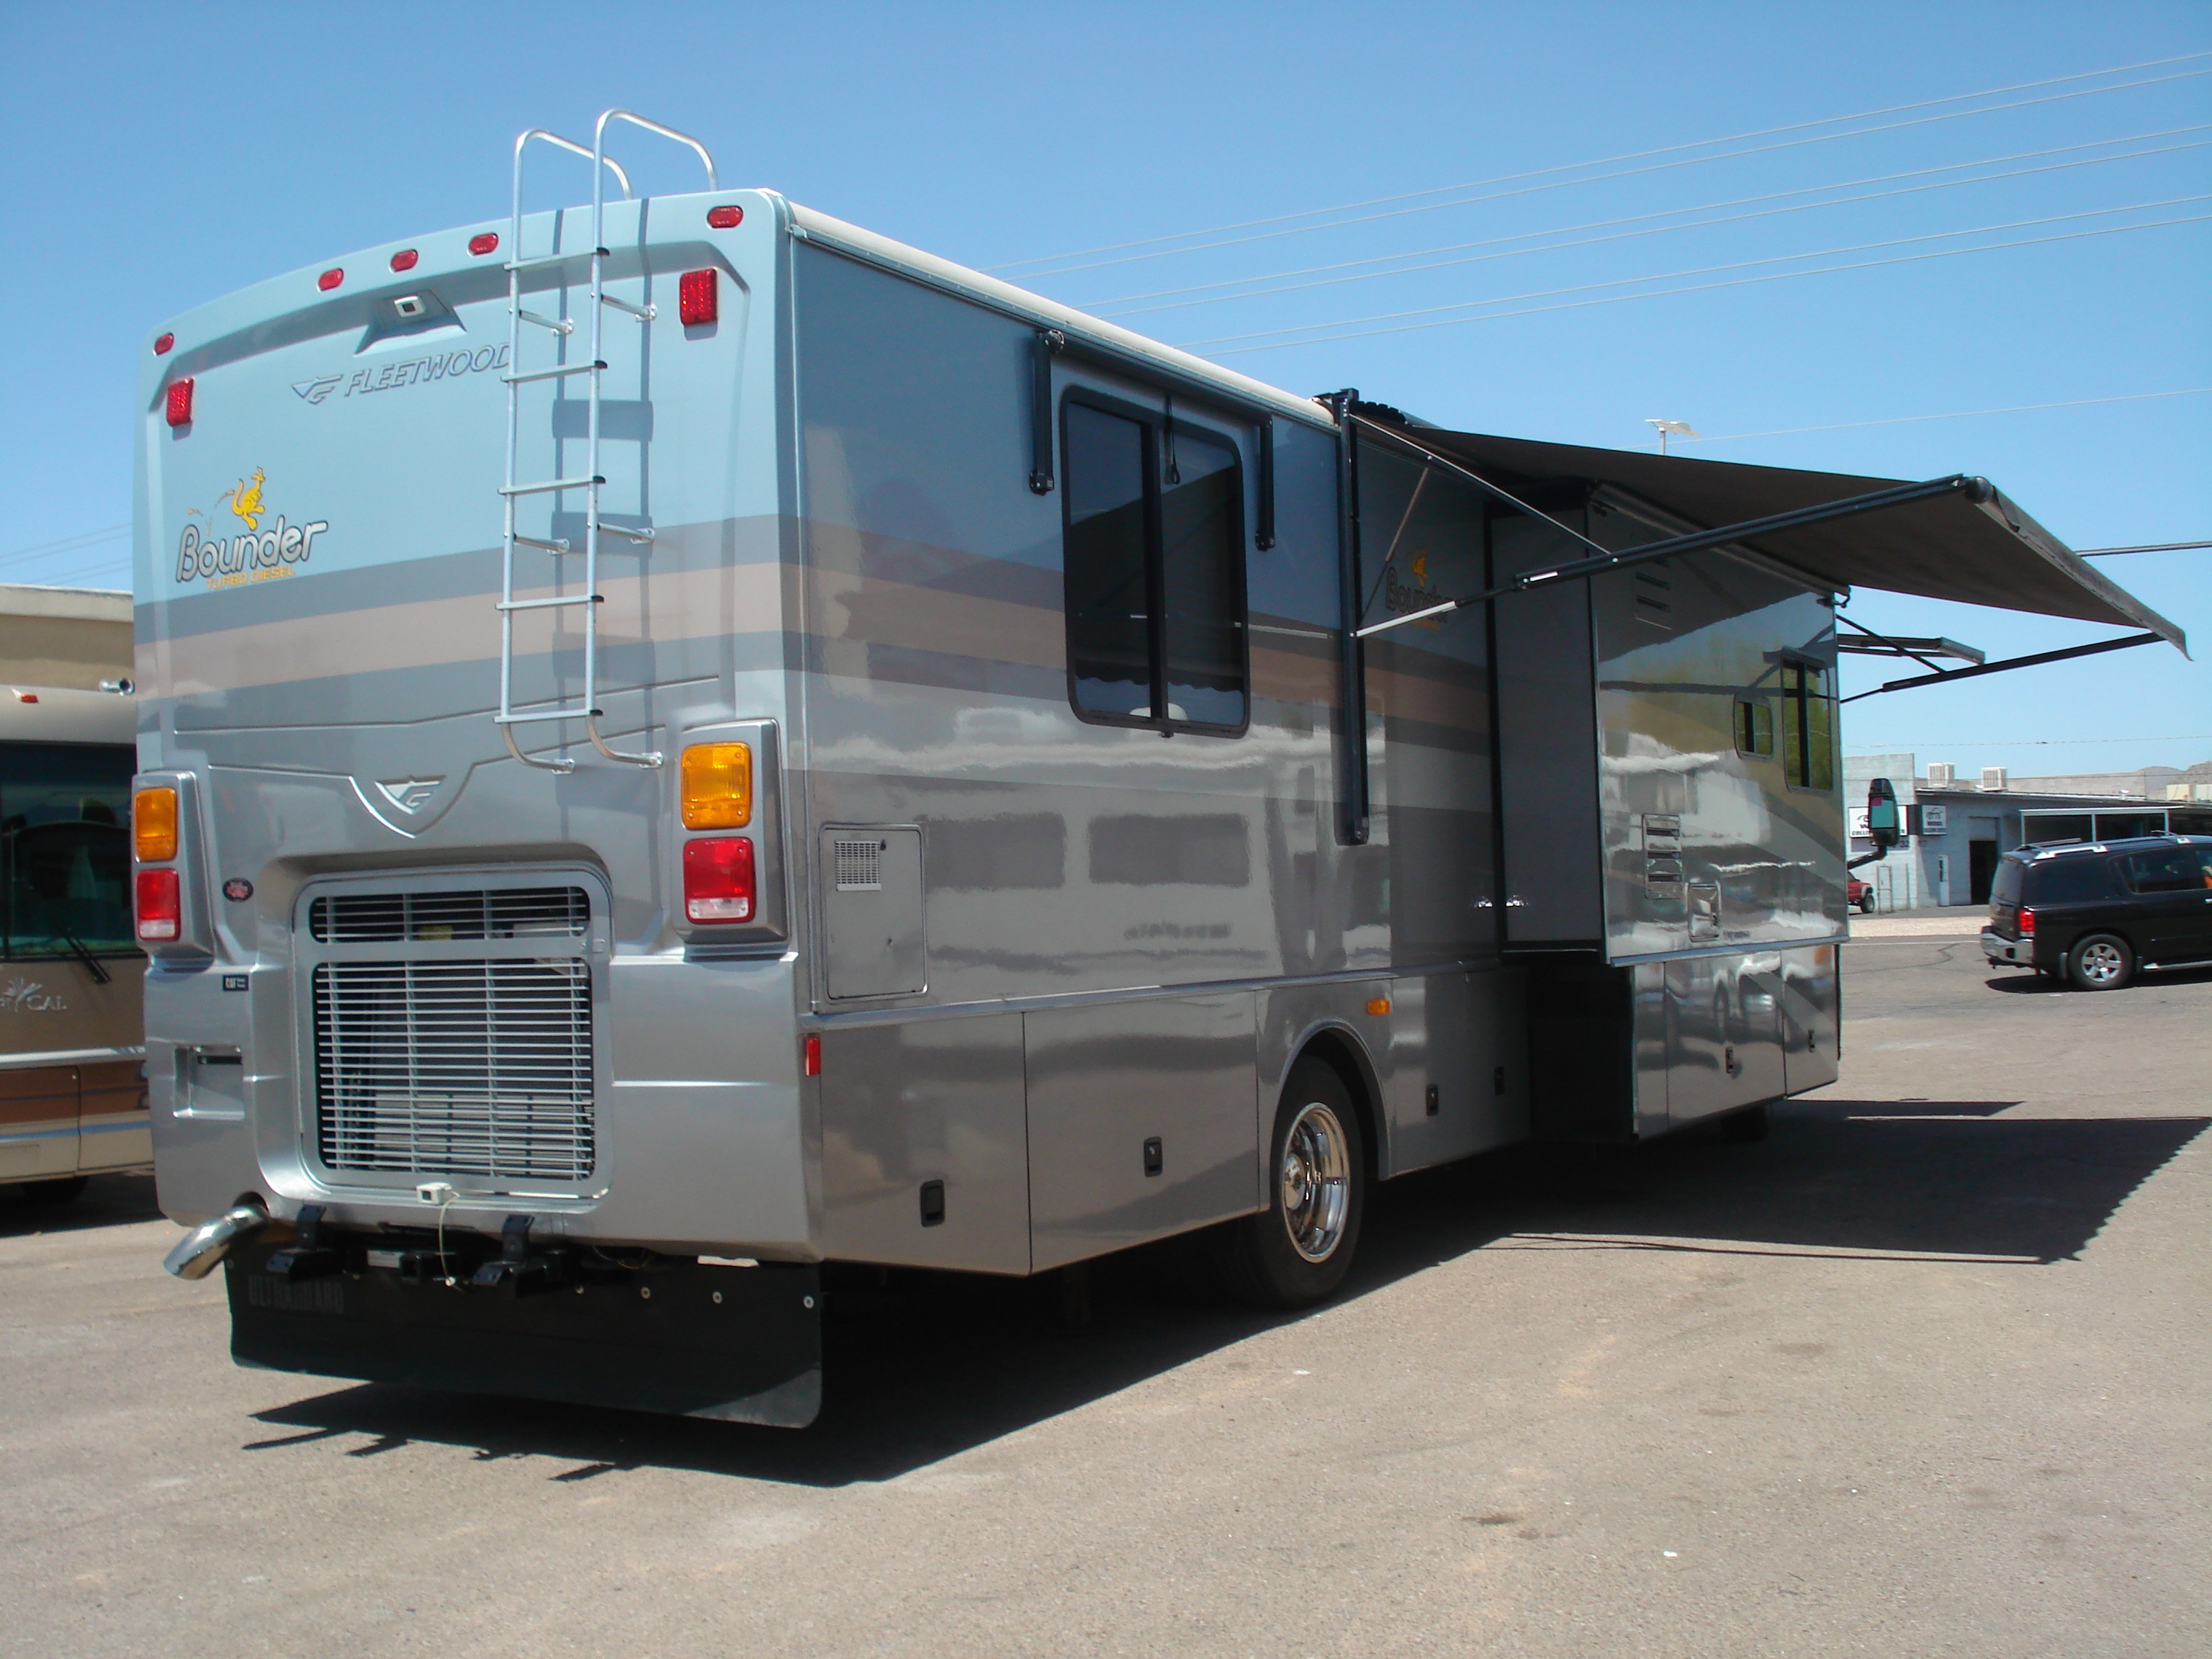 Used 2006 Fleetwood Bounder 38n In Apache Junction Az. Click Here For Larger. Wiring. 2006 Fleetwood Bounder Motorhome Schematic At Scoala.co